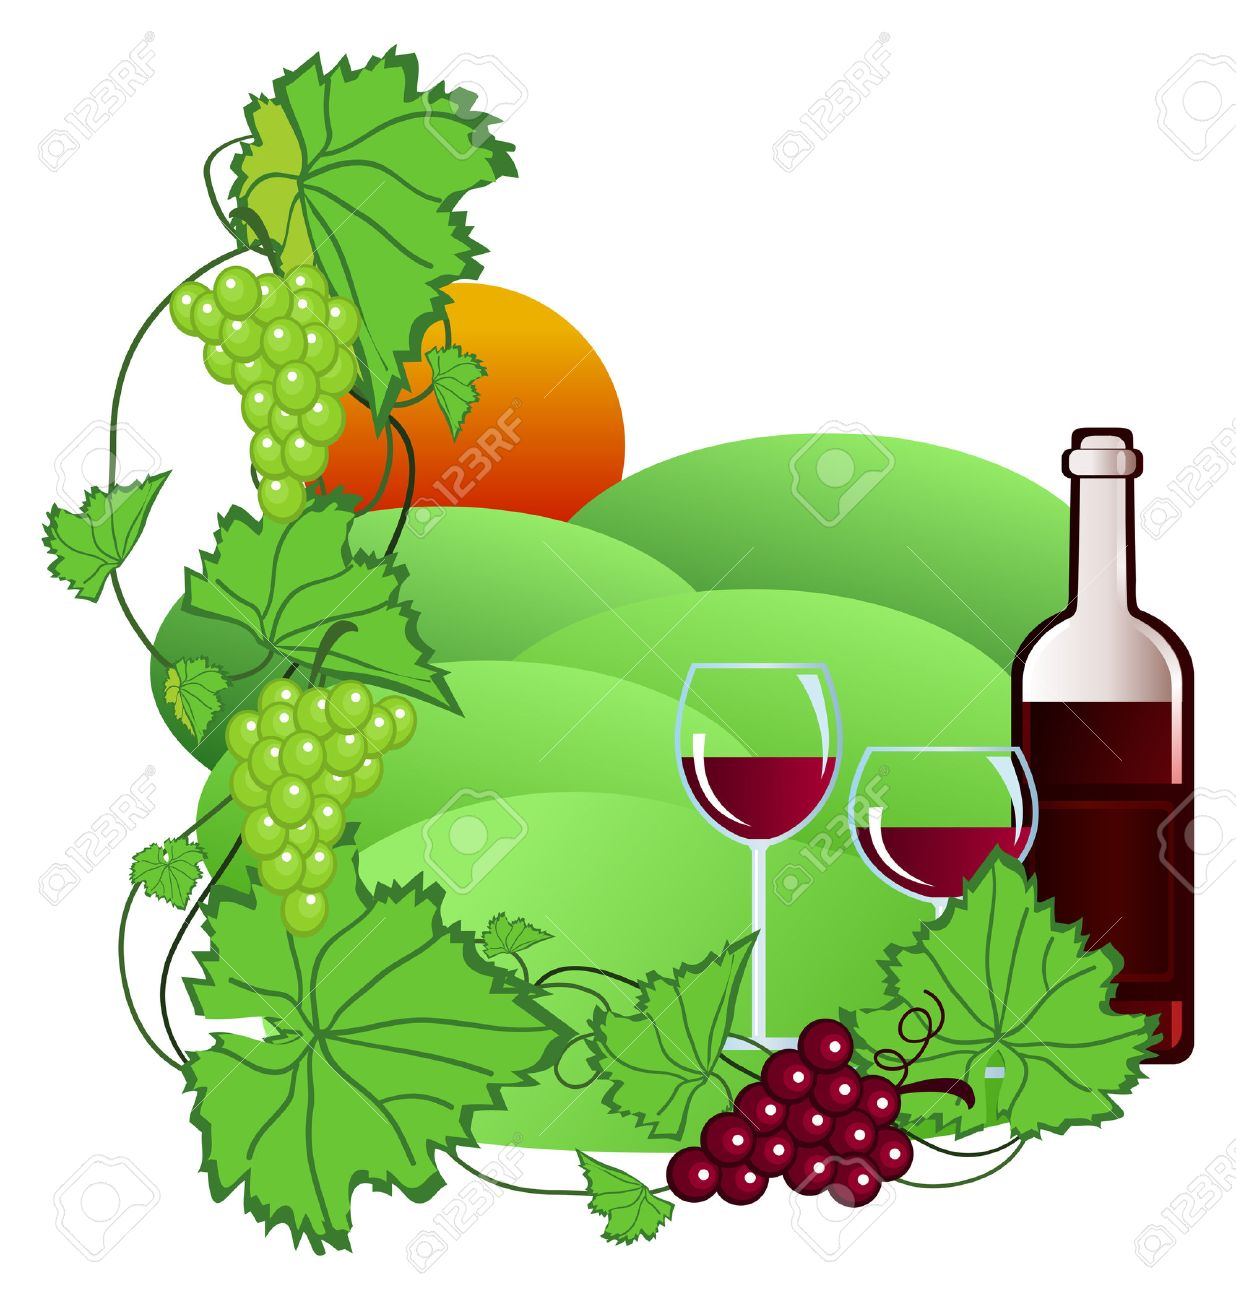 Clip-art Of Wine And Vineyard Royalty Free Cliparts, Vectors, And ...